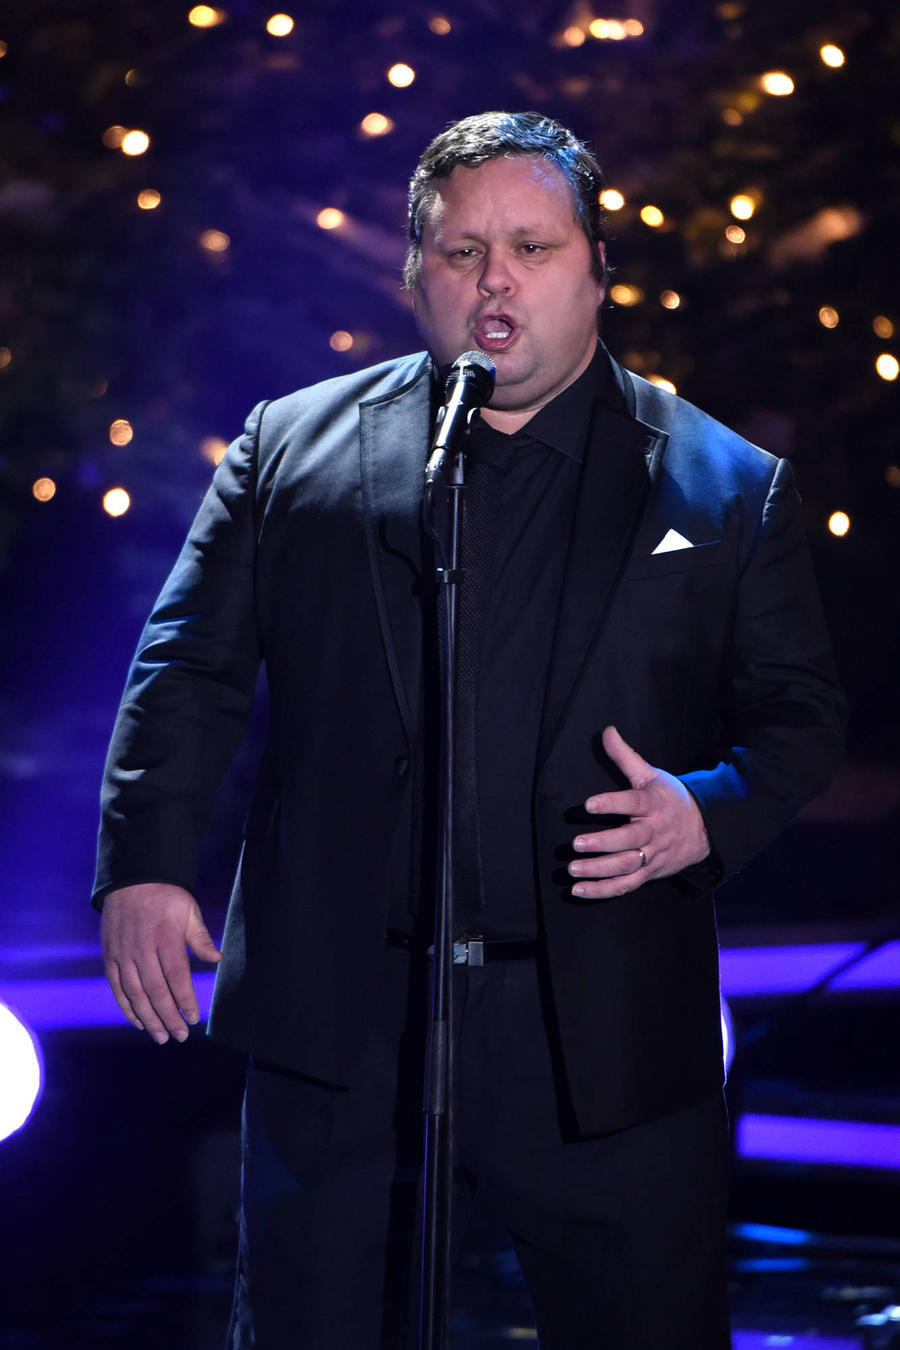 Paul Potts: 'I Never Have A Bodyguard... I Can't Stand That'